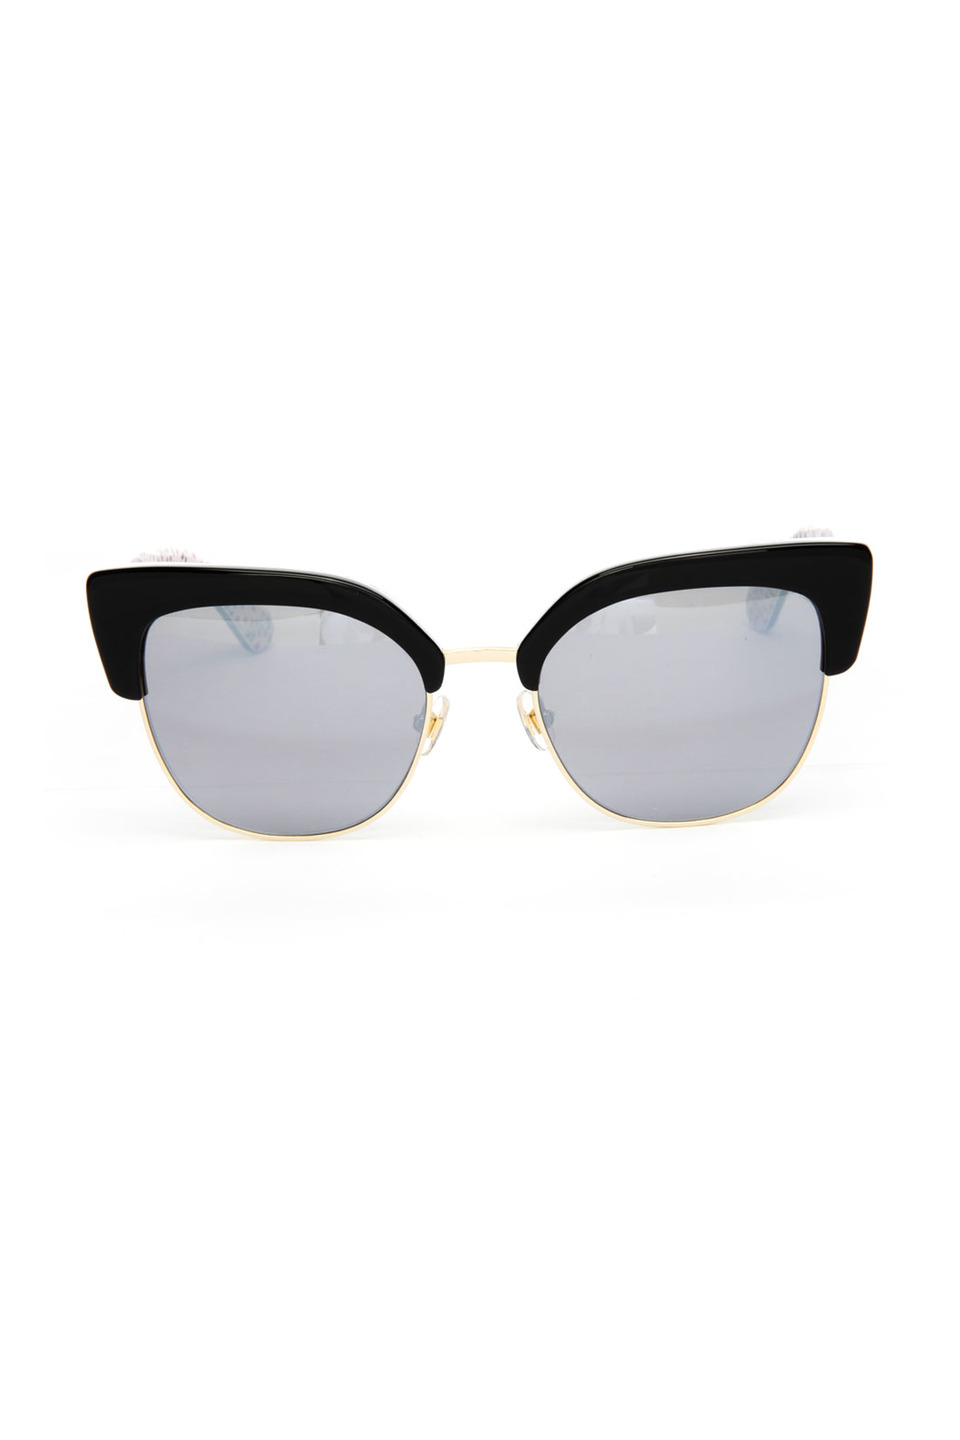 Kate Spade Ladies Sunglasses in Black and Red